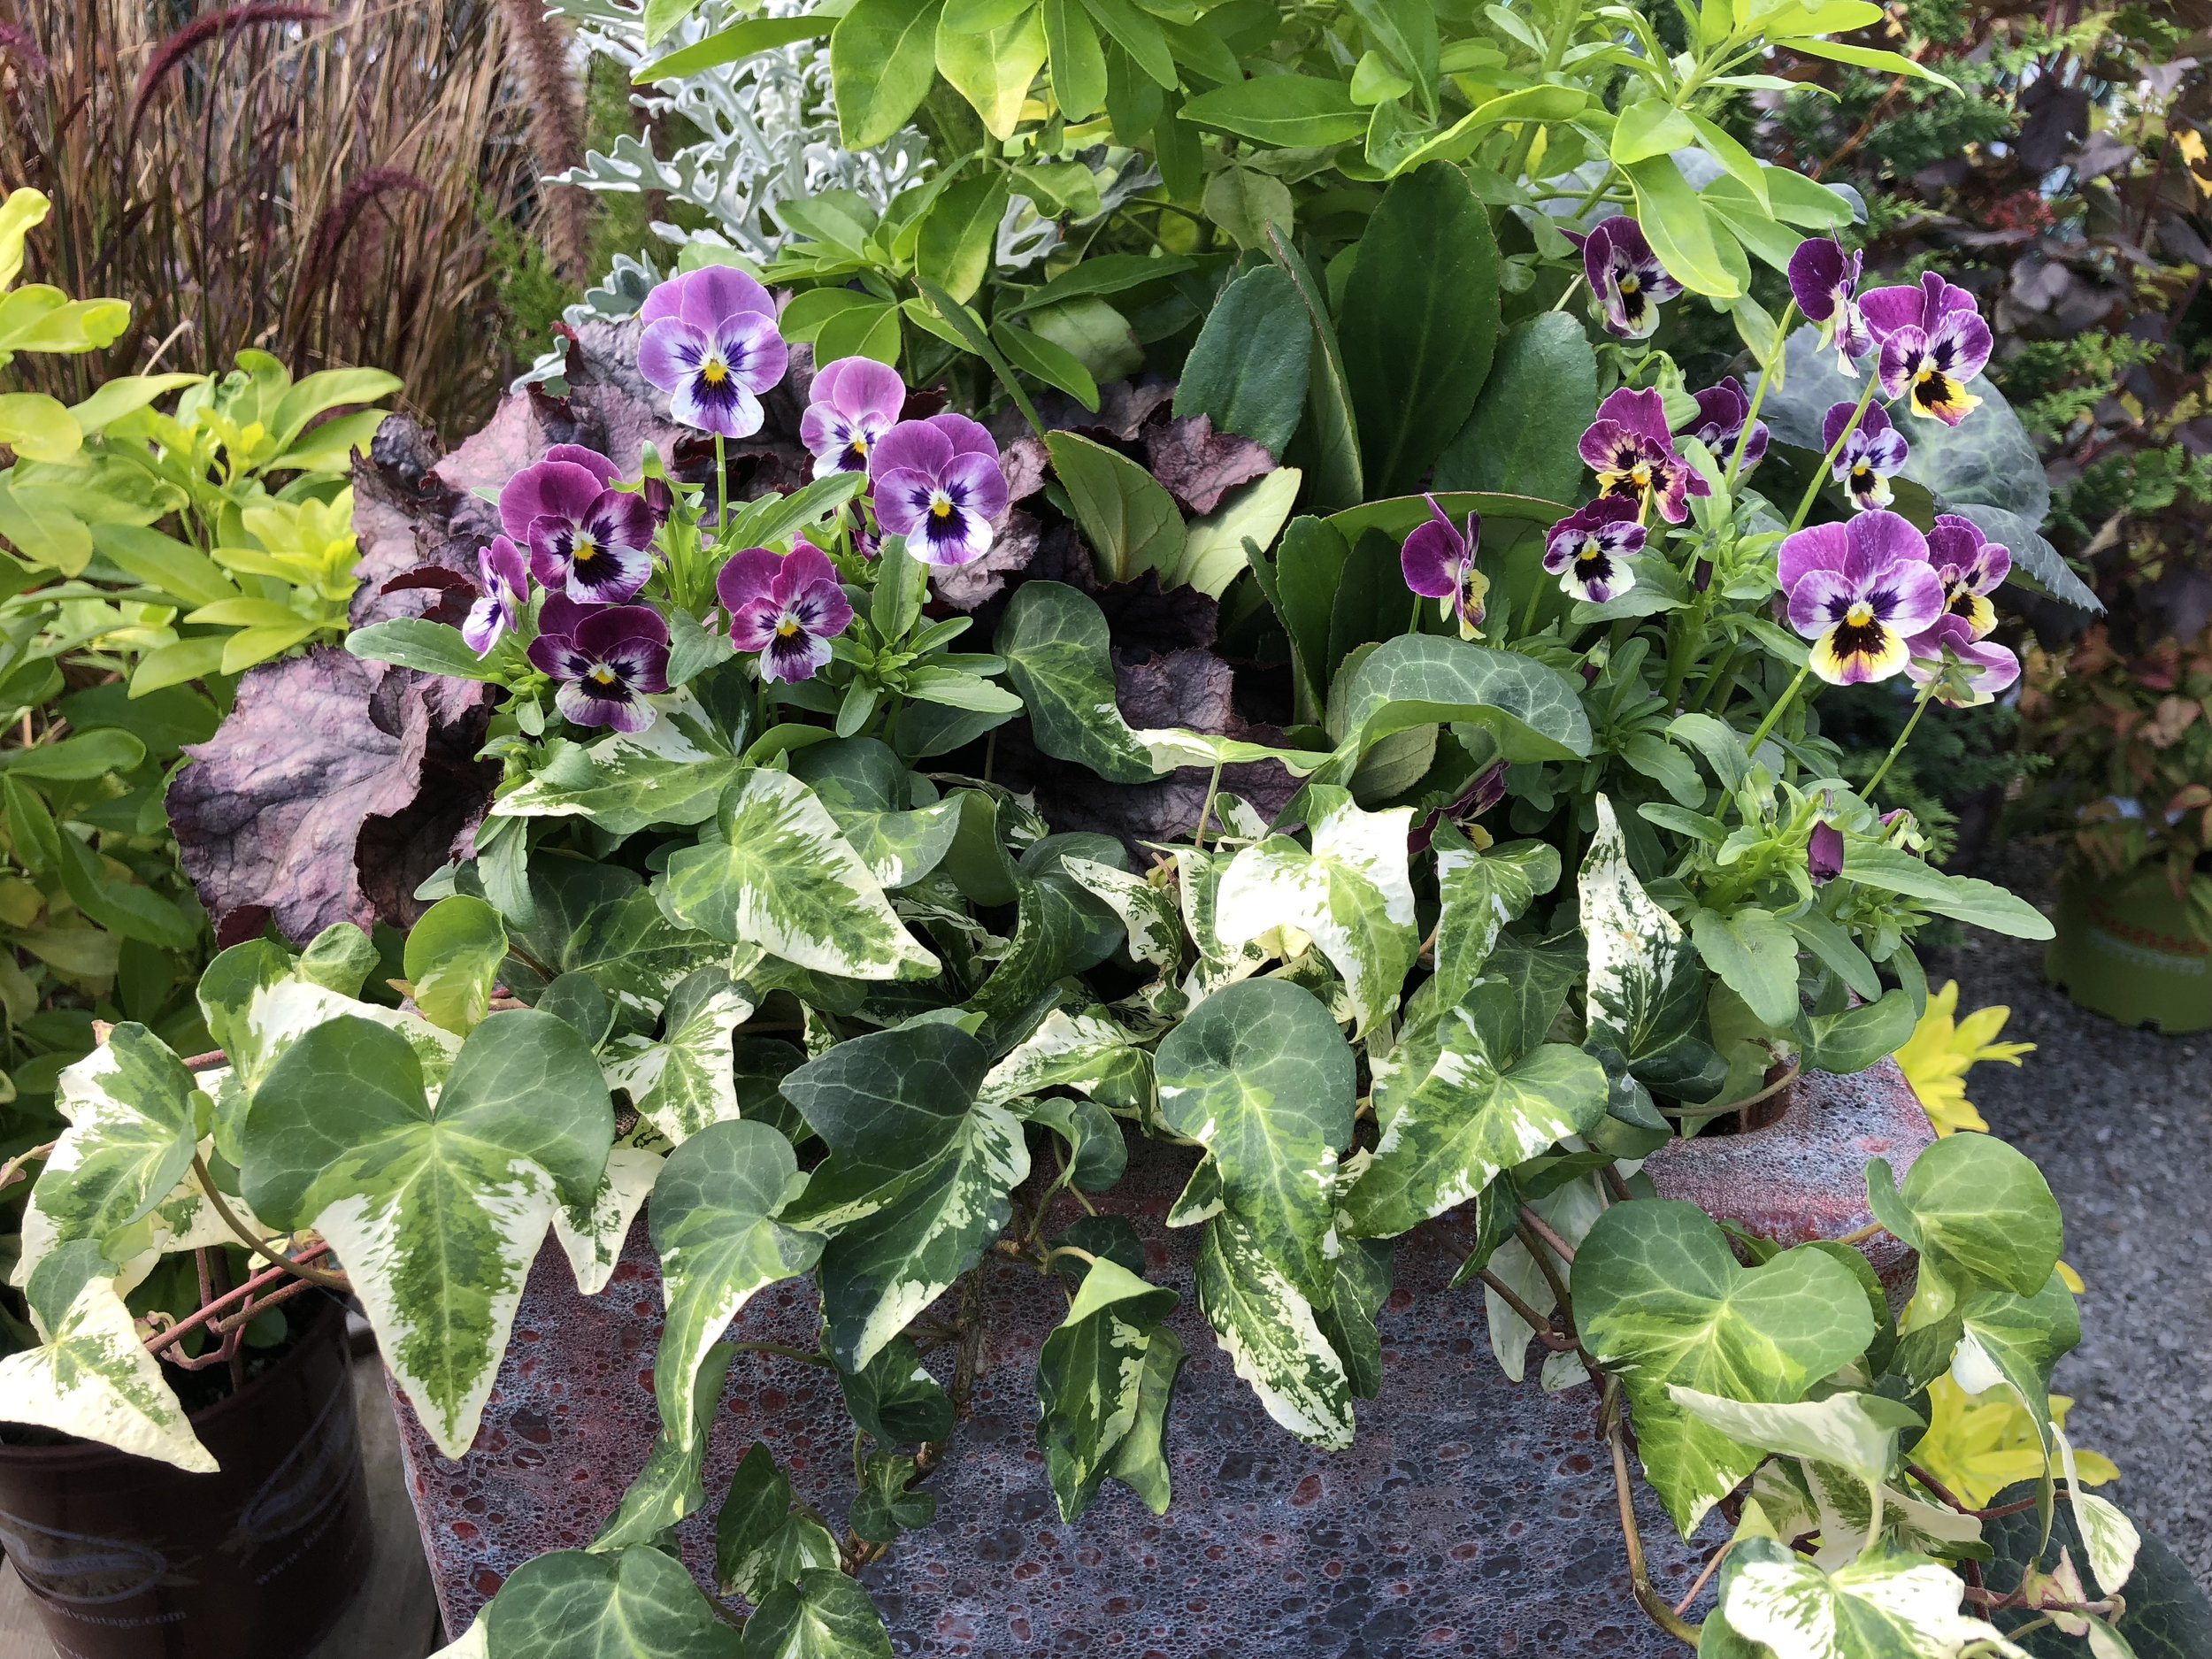 pansies in container.JPG